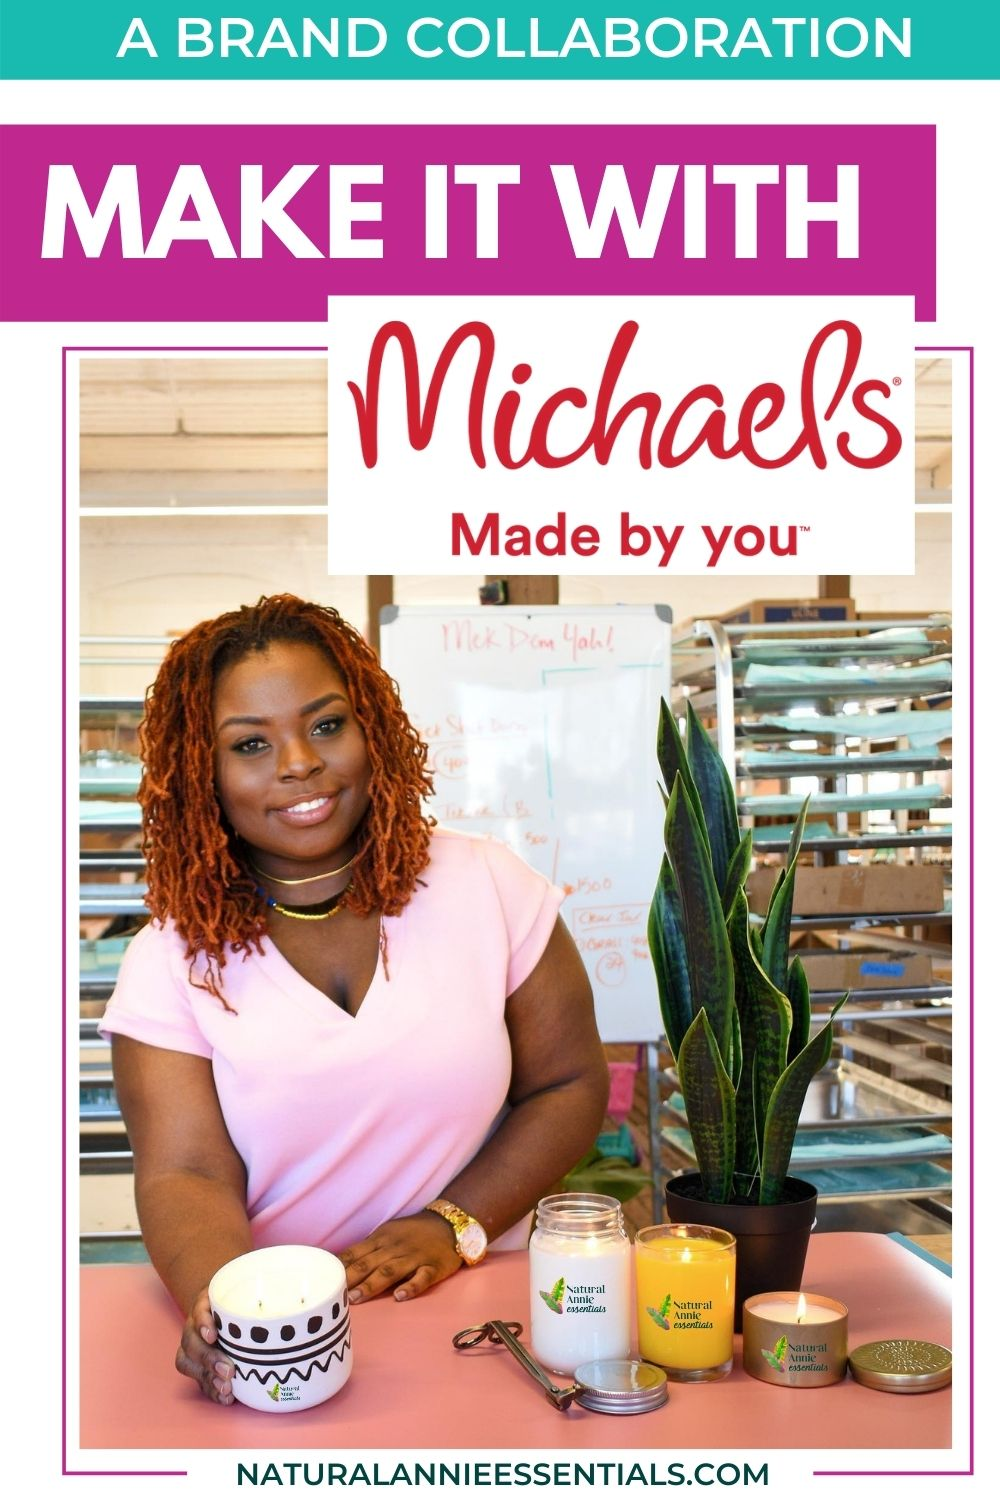 MICHAELS MADE BY YOU BRAND COLLABORATION